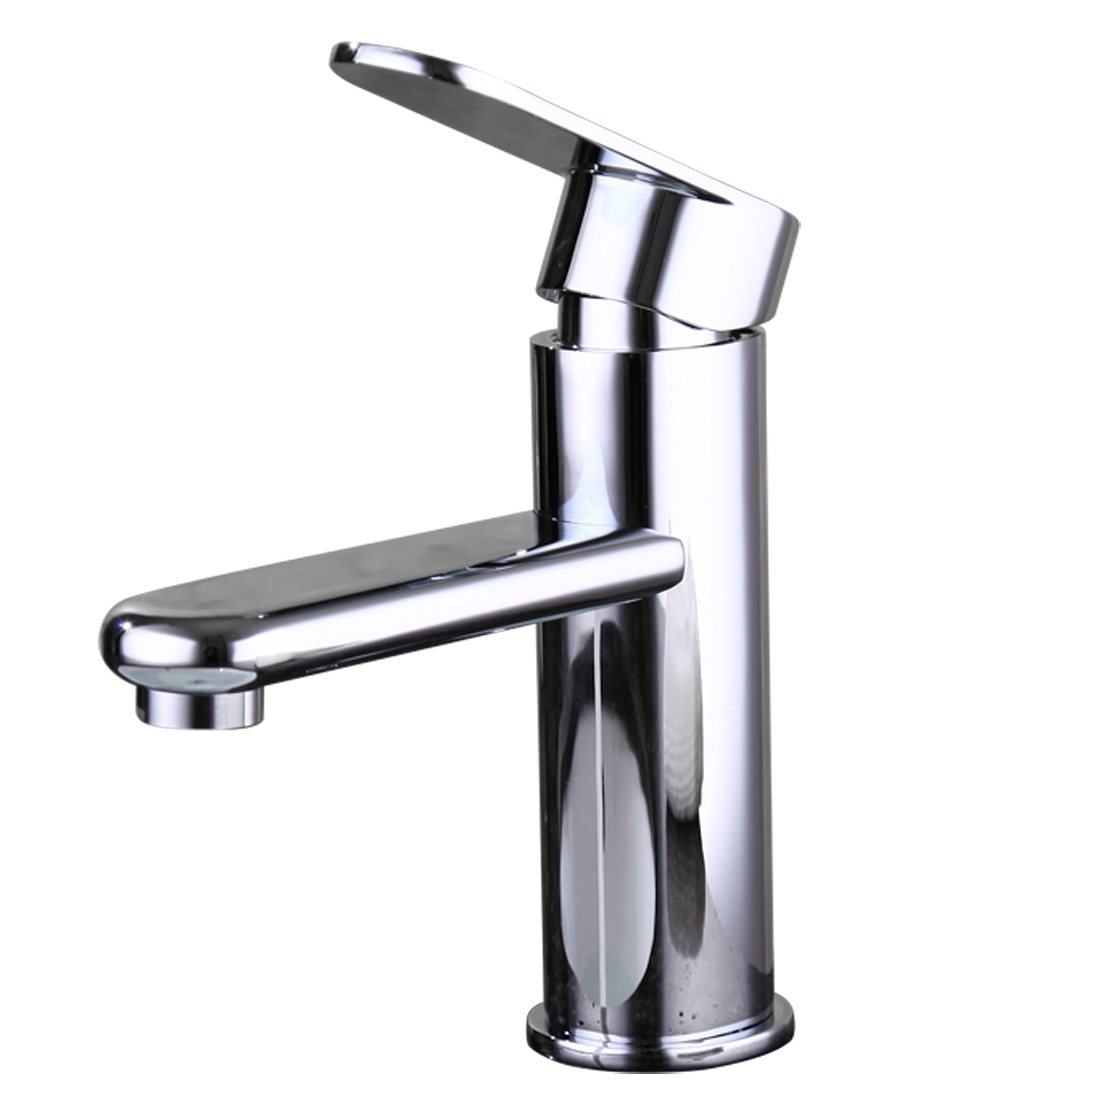 brushed nickel kitchen faucet with sprayer red trash can 1 x one handle spray swivel sink tap